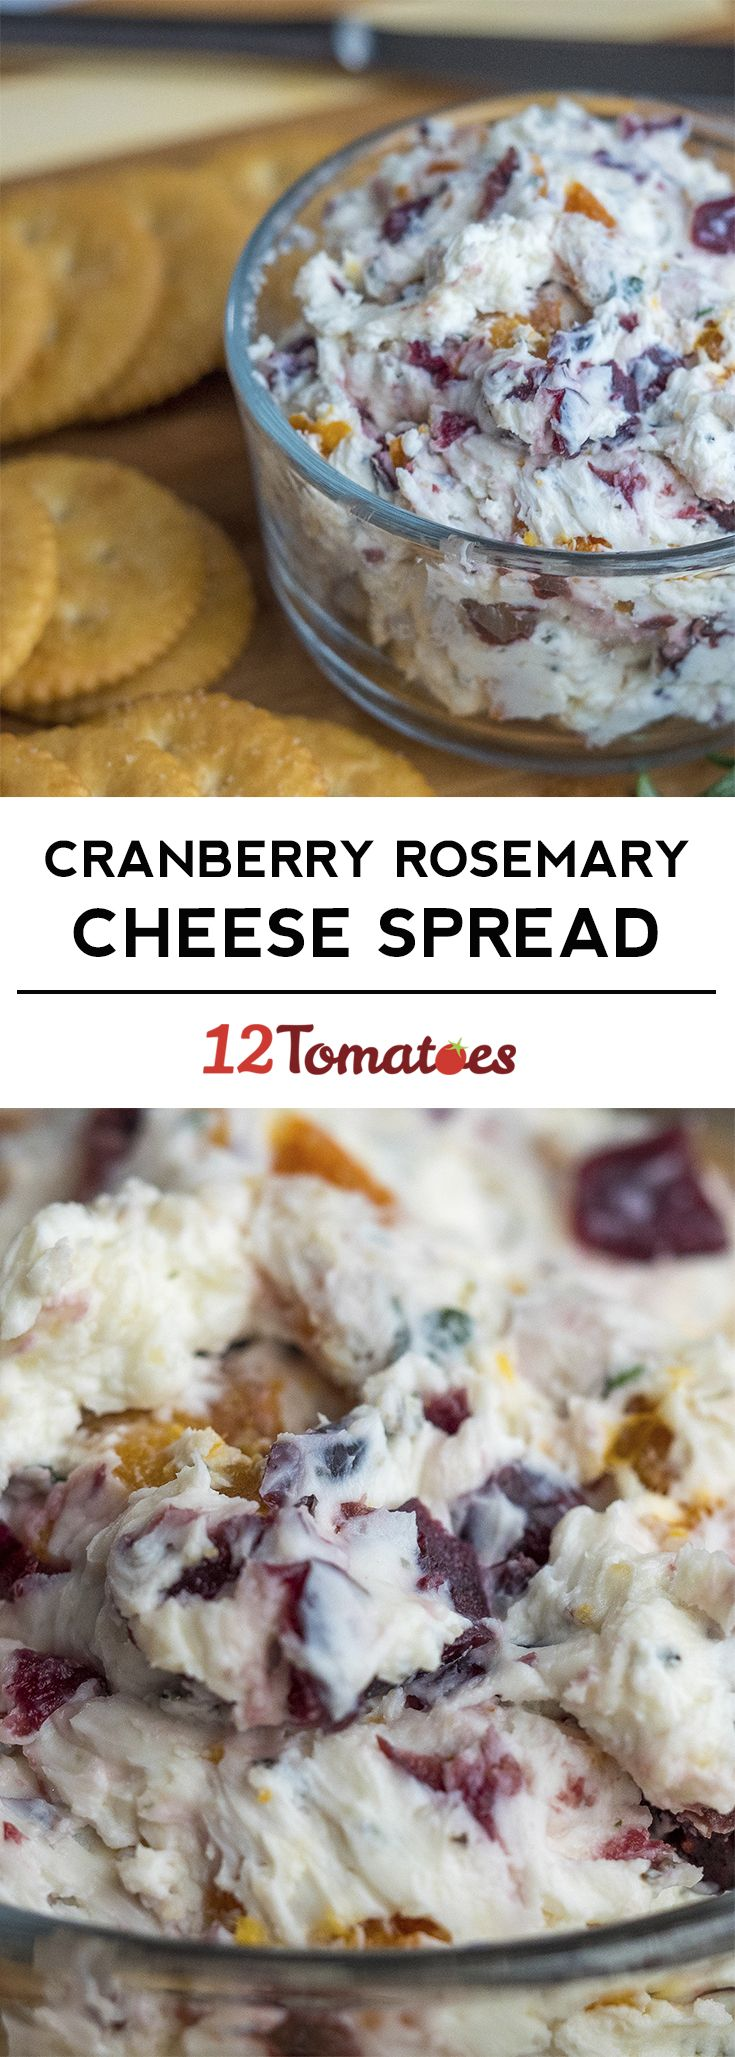 Cranberry Rosemary Cheese Spread - a great appetizer for the holidays!